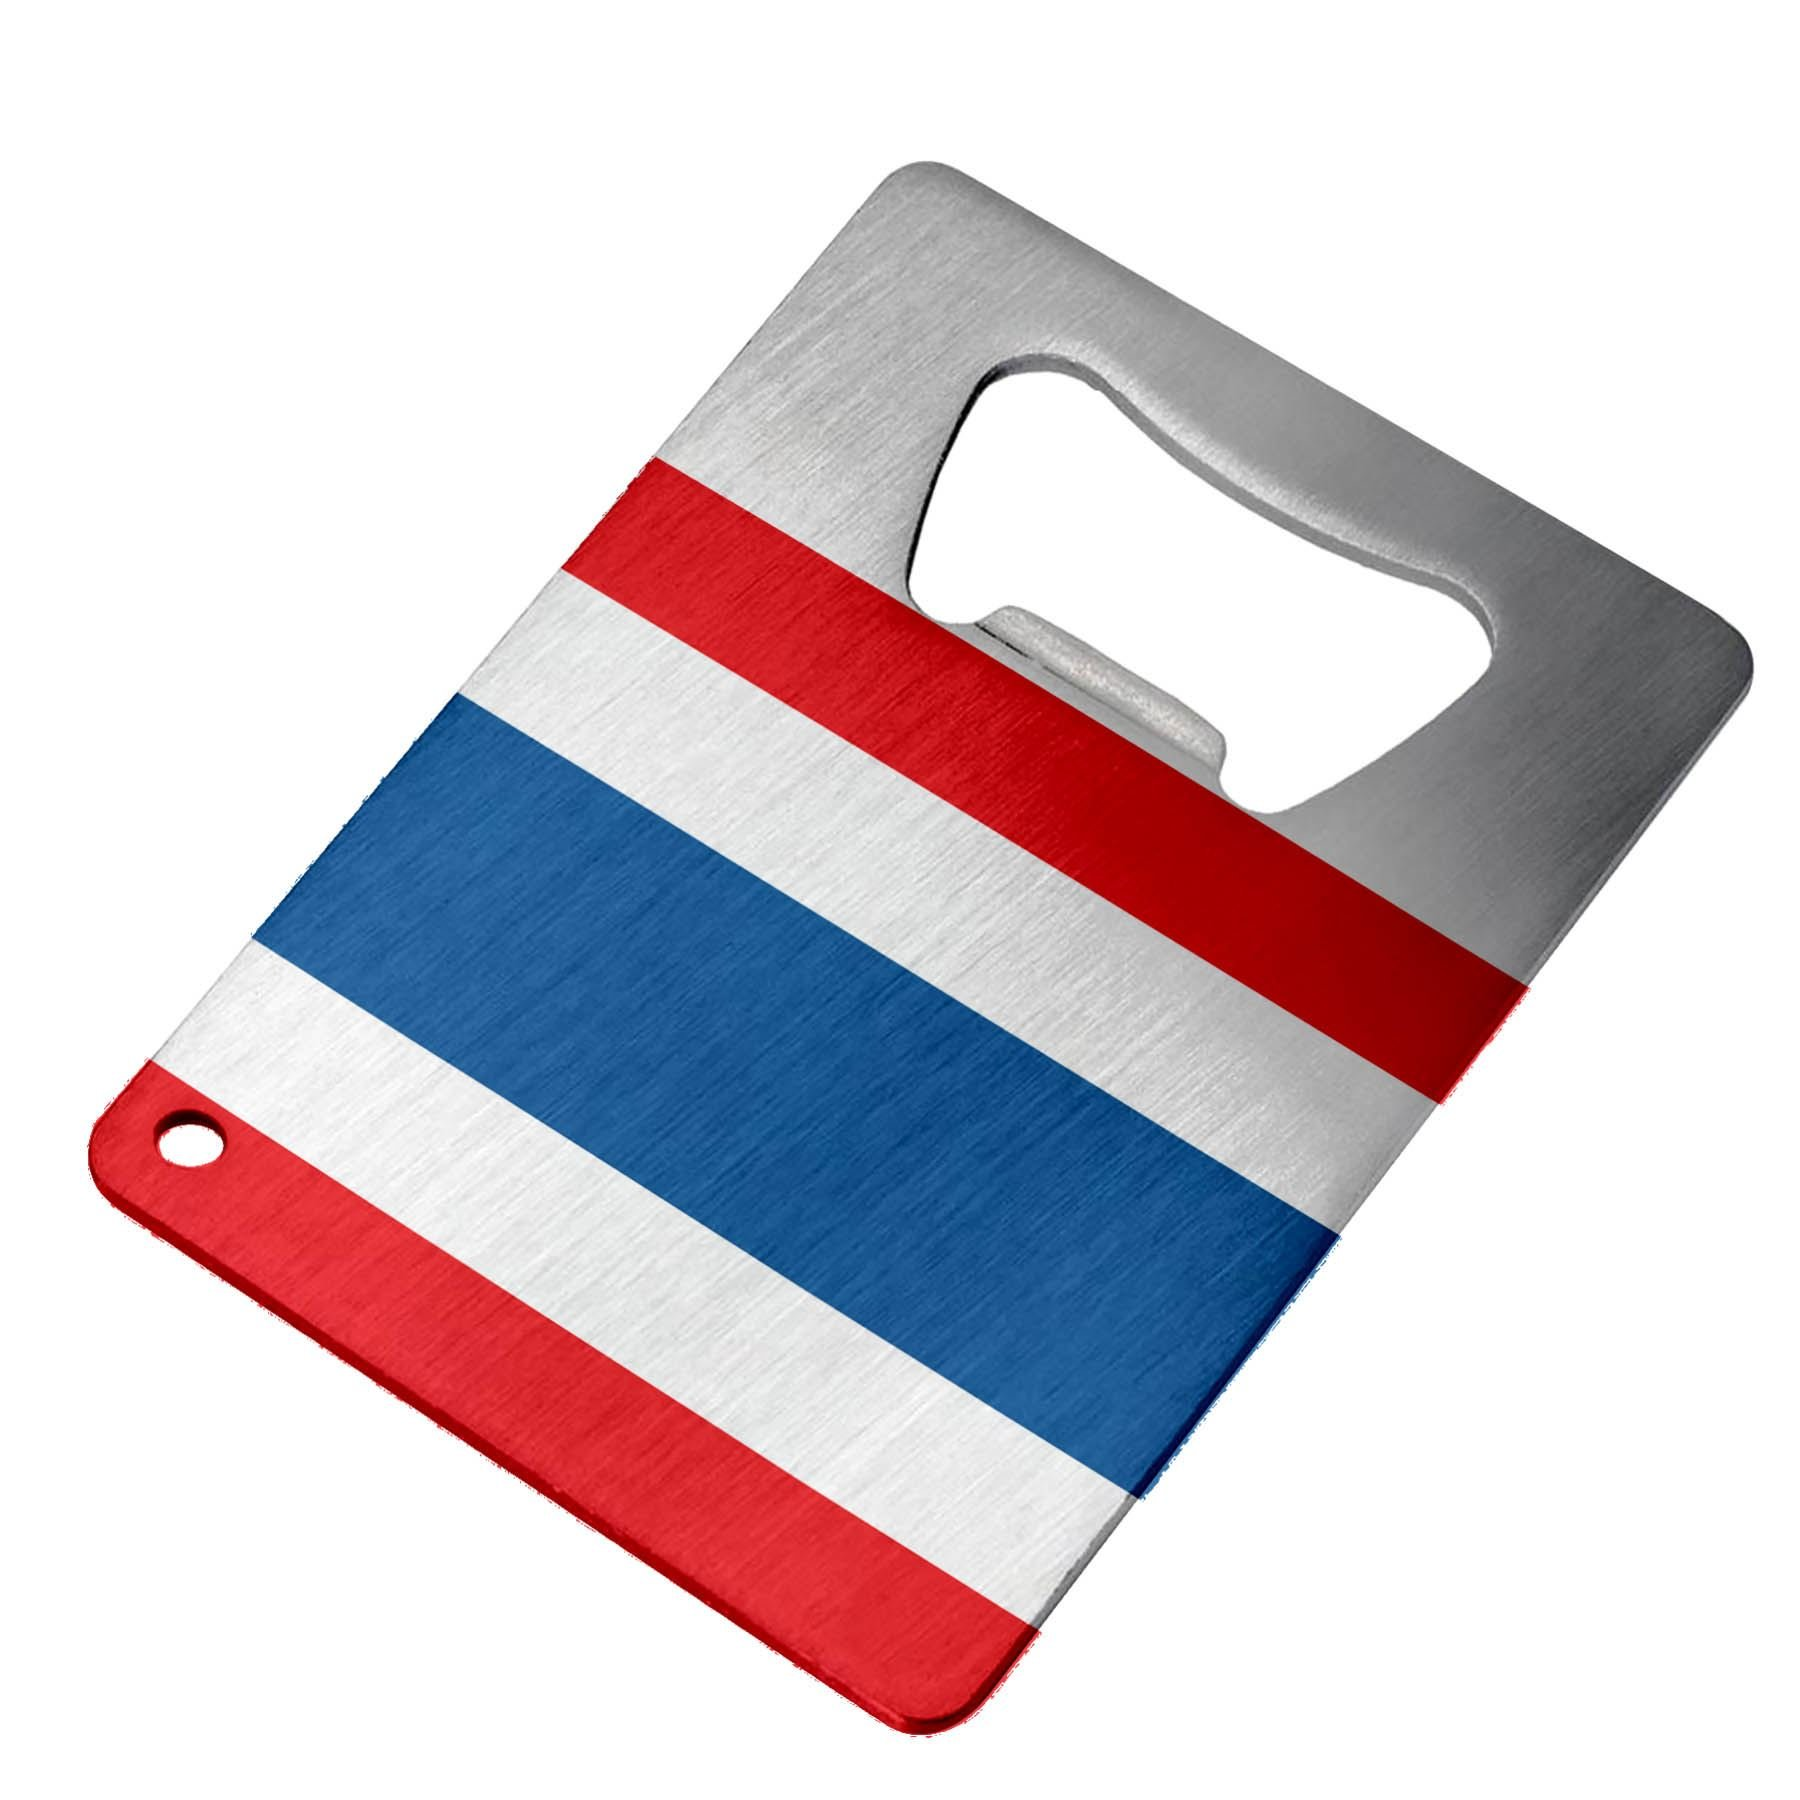 Bottle Opener - Stainless Steel - Fits in wallet - Flag of Thailand (Thai) by ExpressItBest